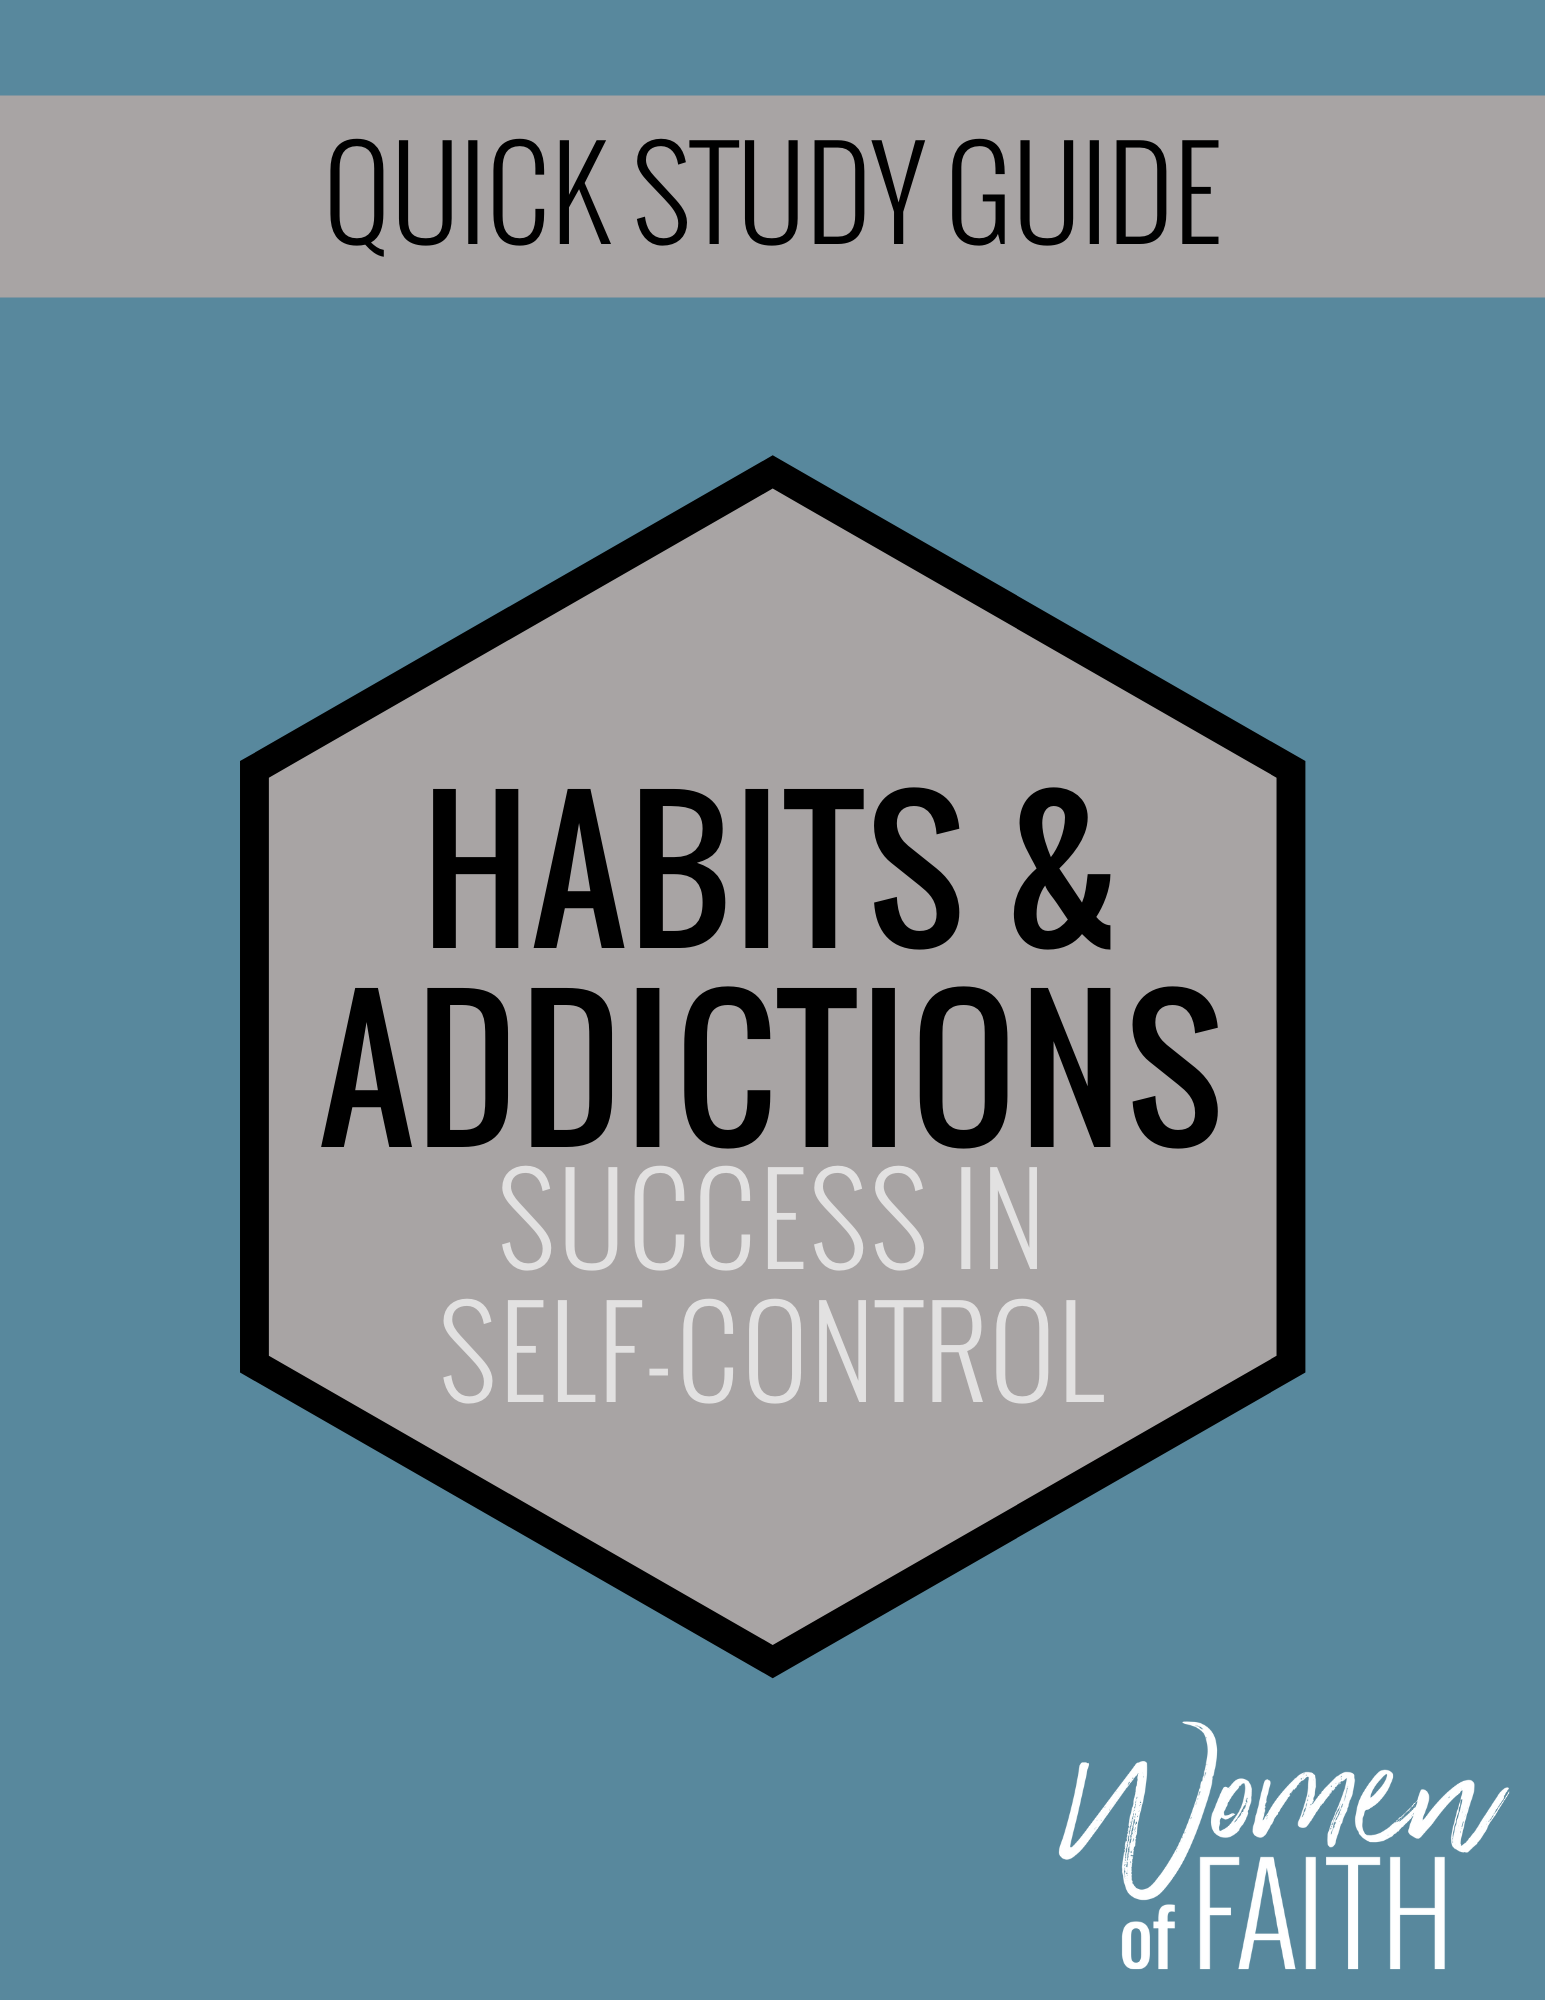 HABITS & ADDICTIONS Quick Study Guide (E-GUIDE)